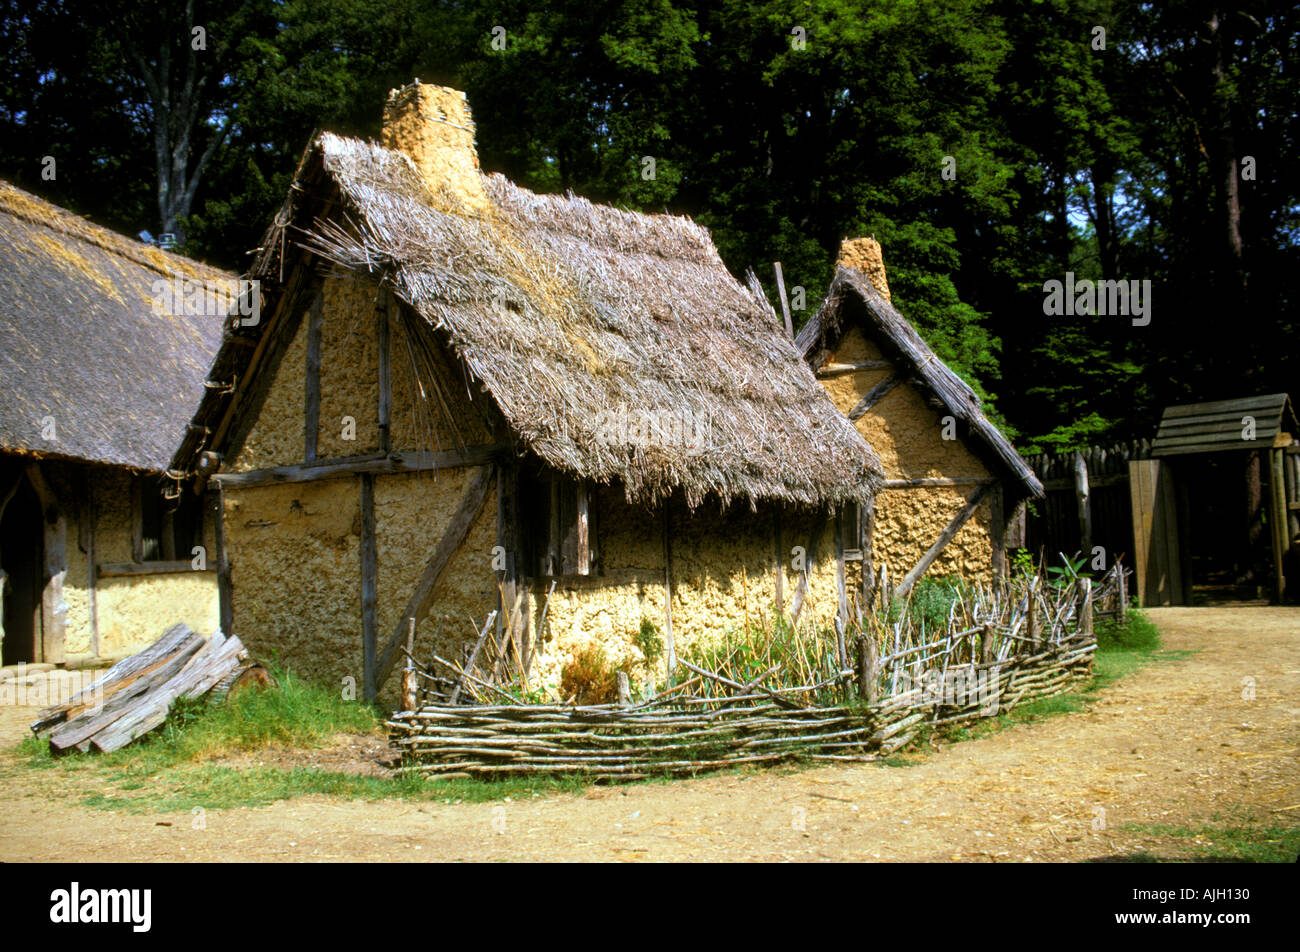 a look at the early settlers of virginia in the 1600s Interesting virginia colony facts: the virginia colony was founded at jamestown in 1607 it was the first english colony in the new world disease, conflicts with indians, and hunger almost destroyed jamestown but new settlers arrived in 1610 with supplies and the colony began to thrive.